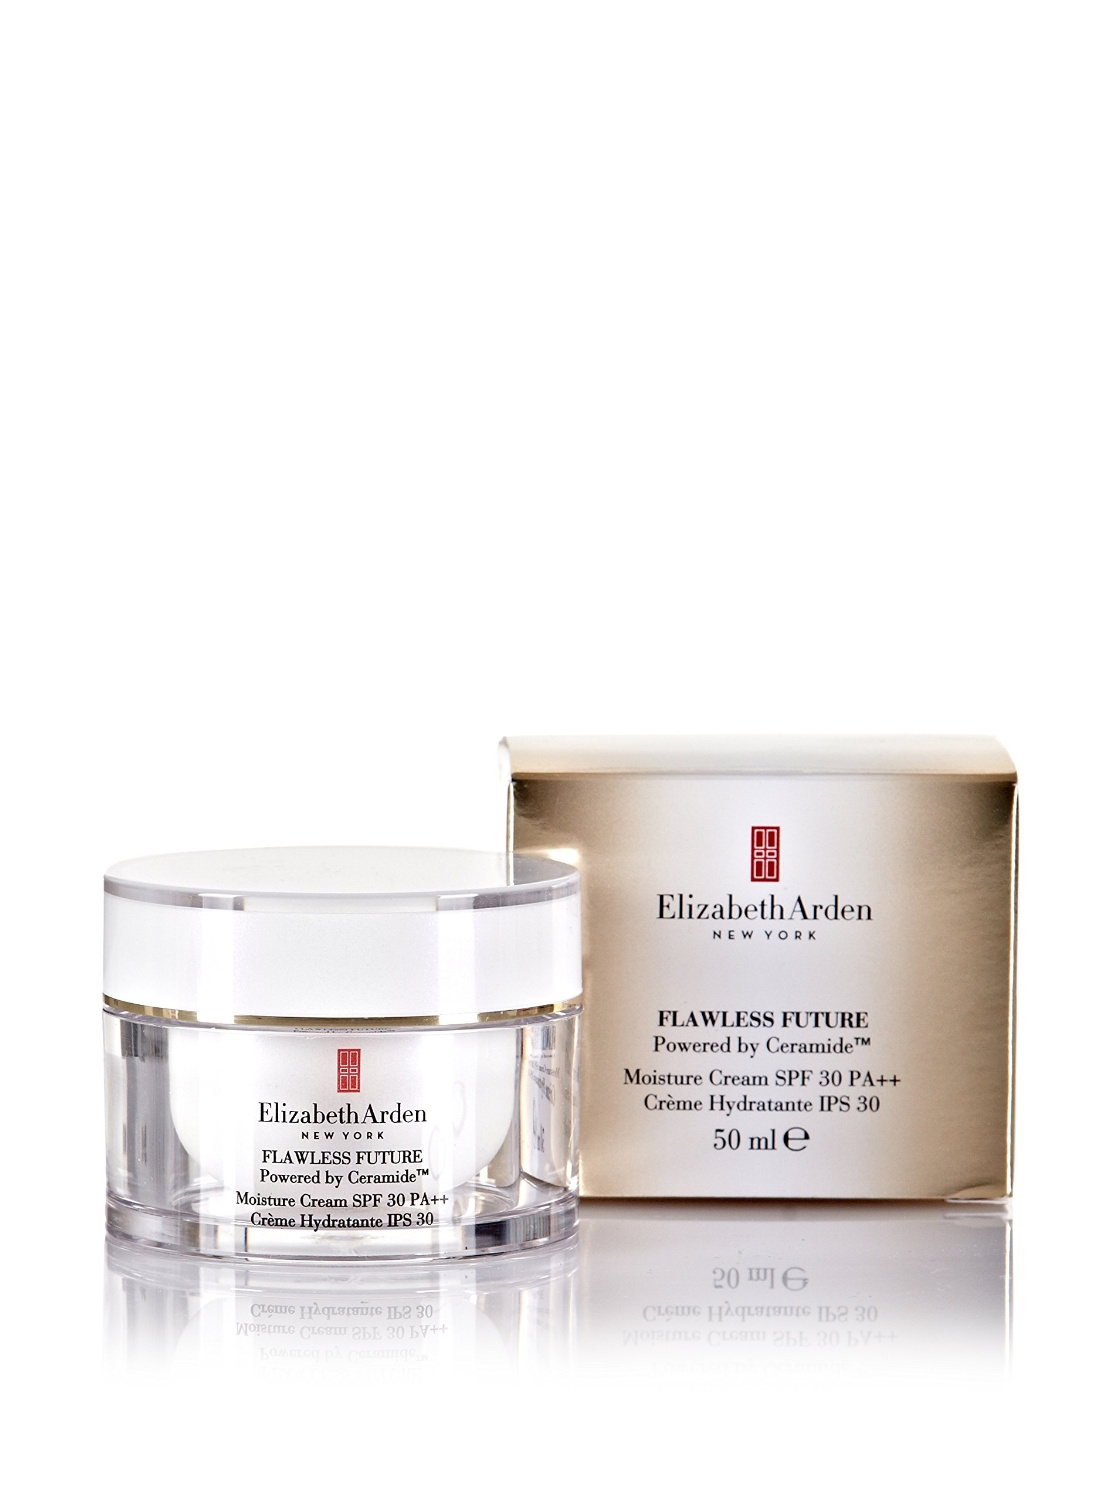 Flawless Future Moisture Cream Beautypedia